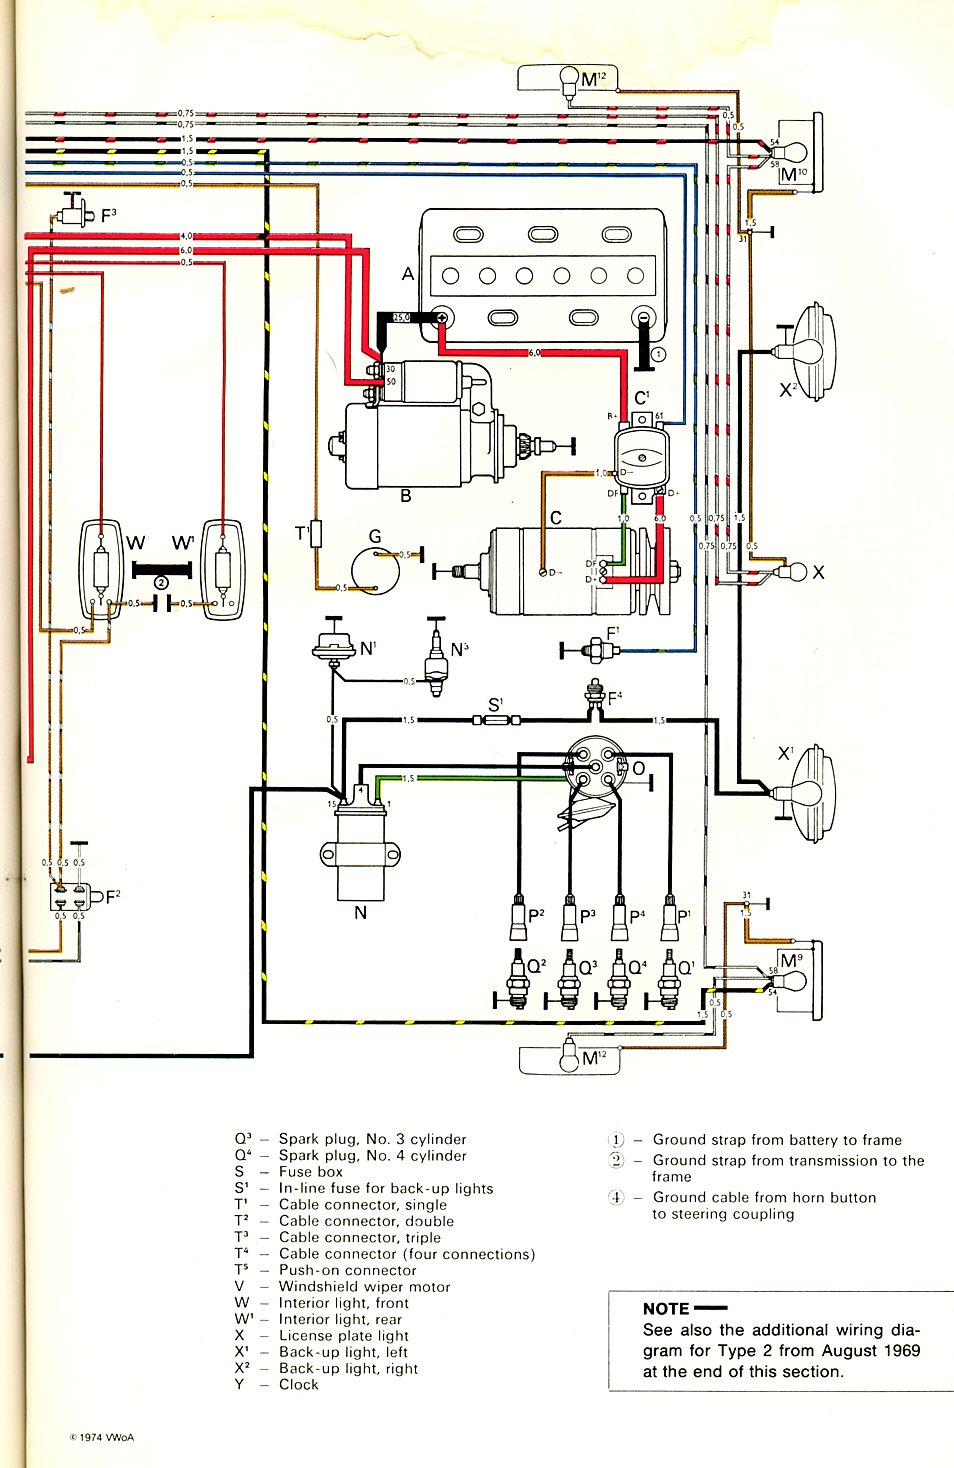 Type 2 Wiring Diagrams Ford Contour 0 Engine Diagram